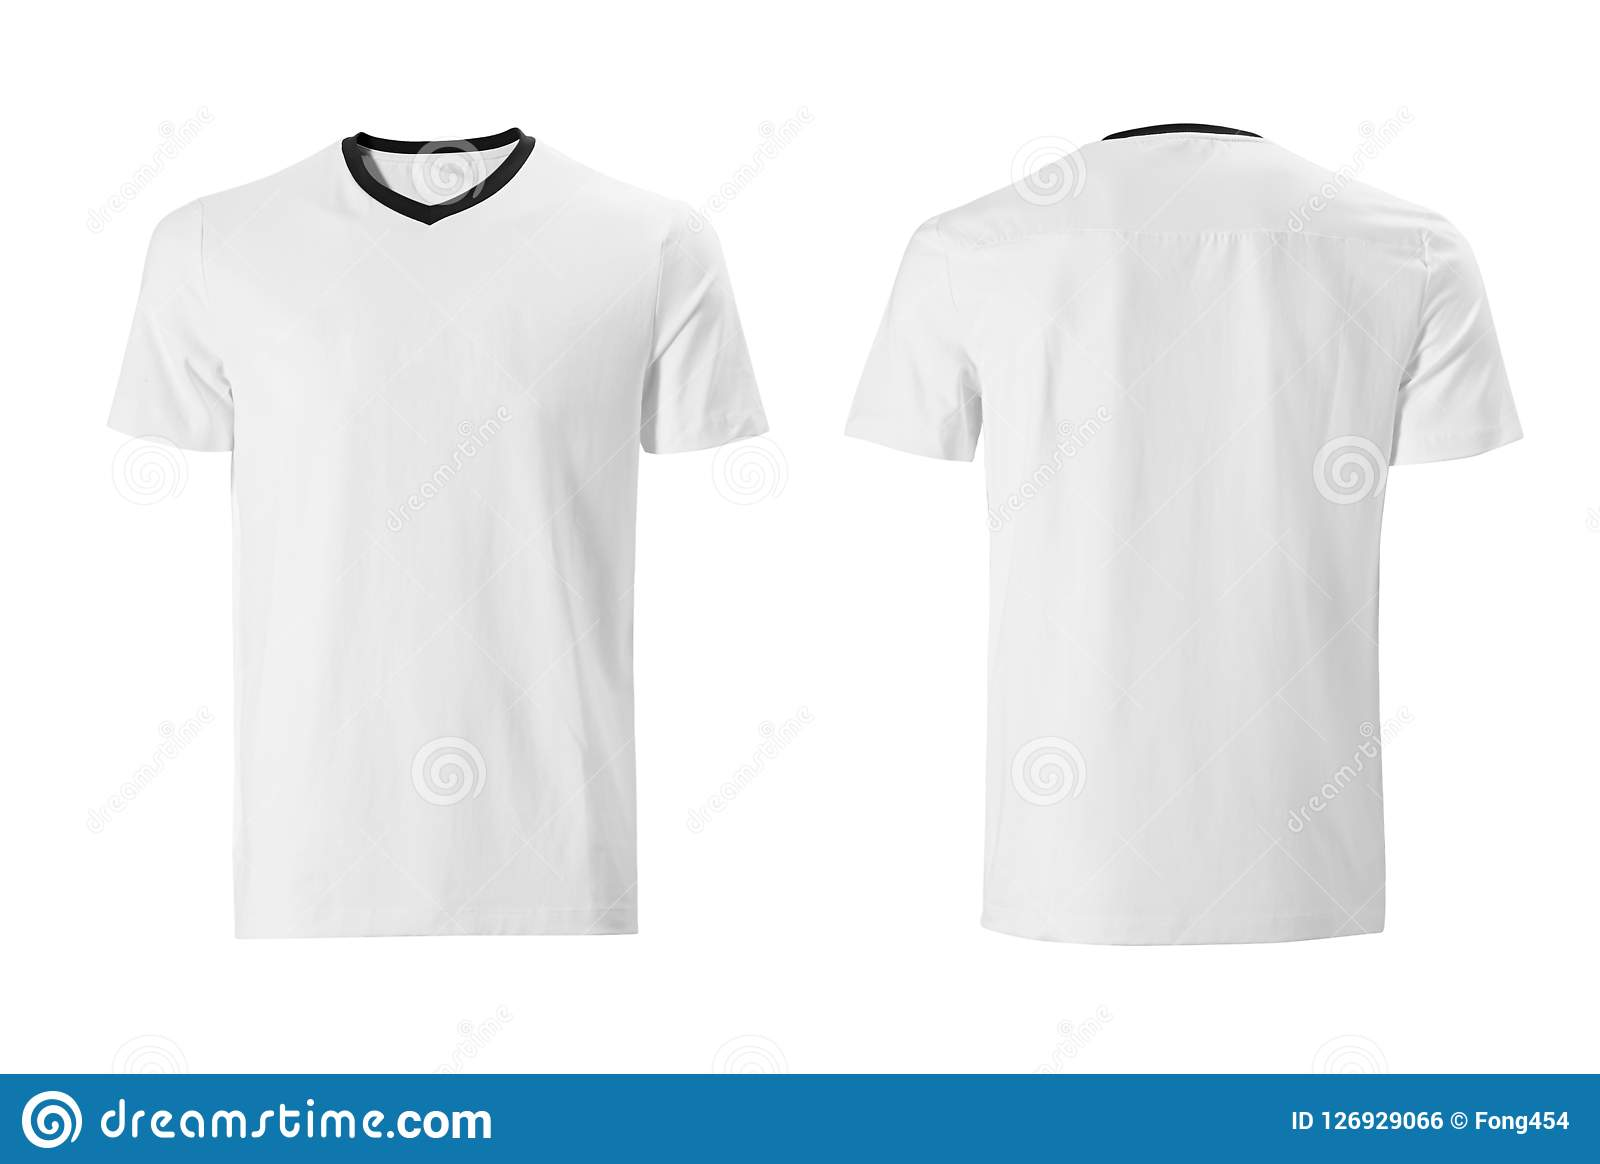 White Tshirt With Black Collar Design Template Isolated On White